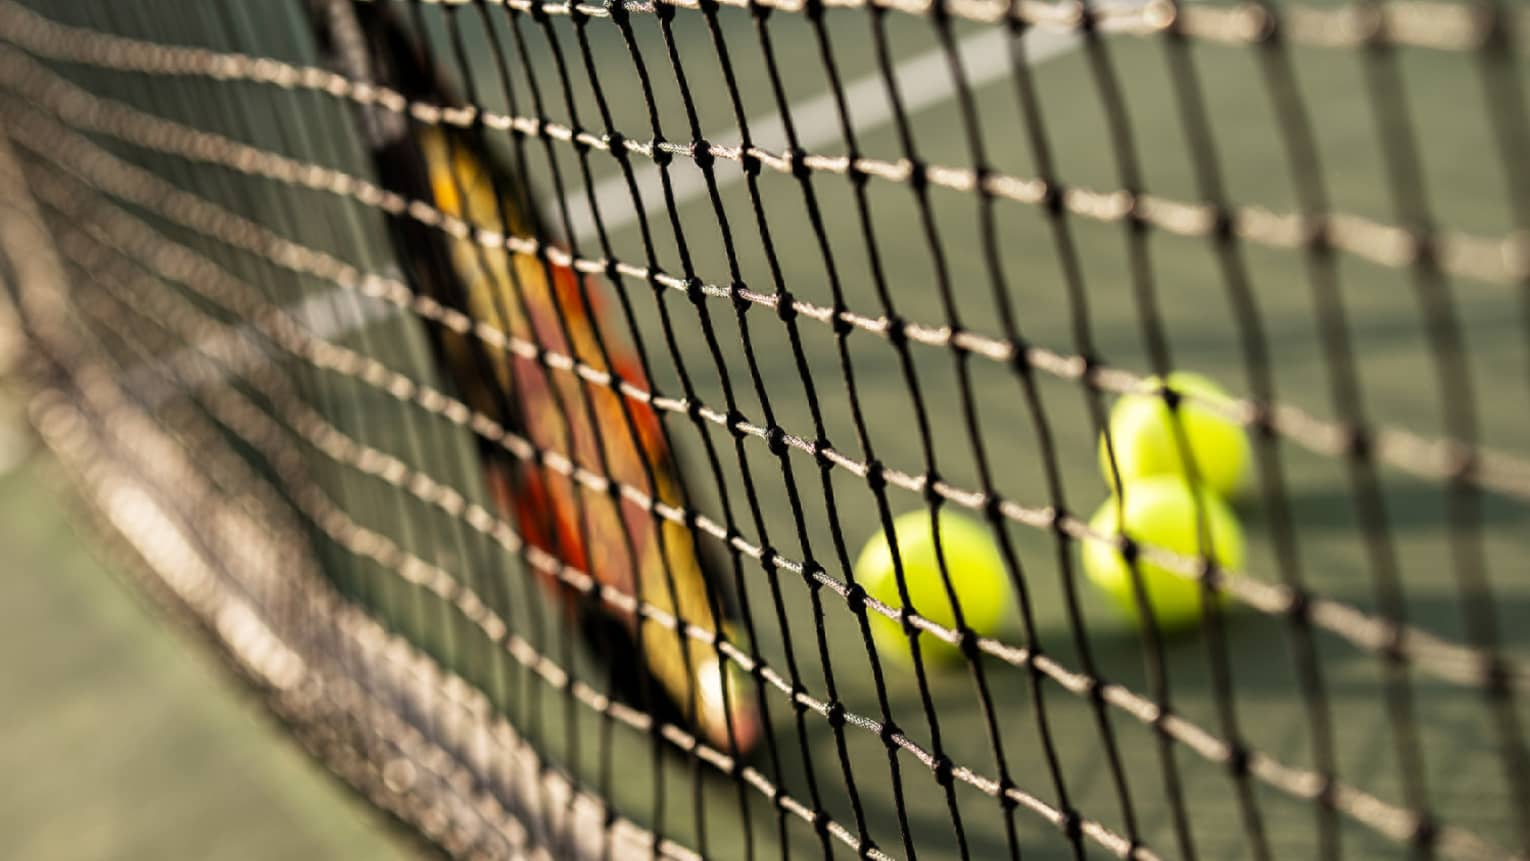 Close-up of tennis racket against net, three green tennis balls on ground